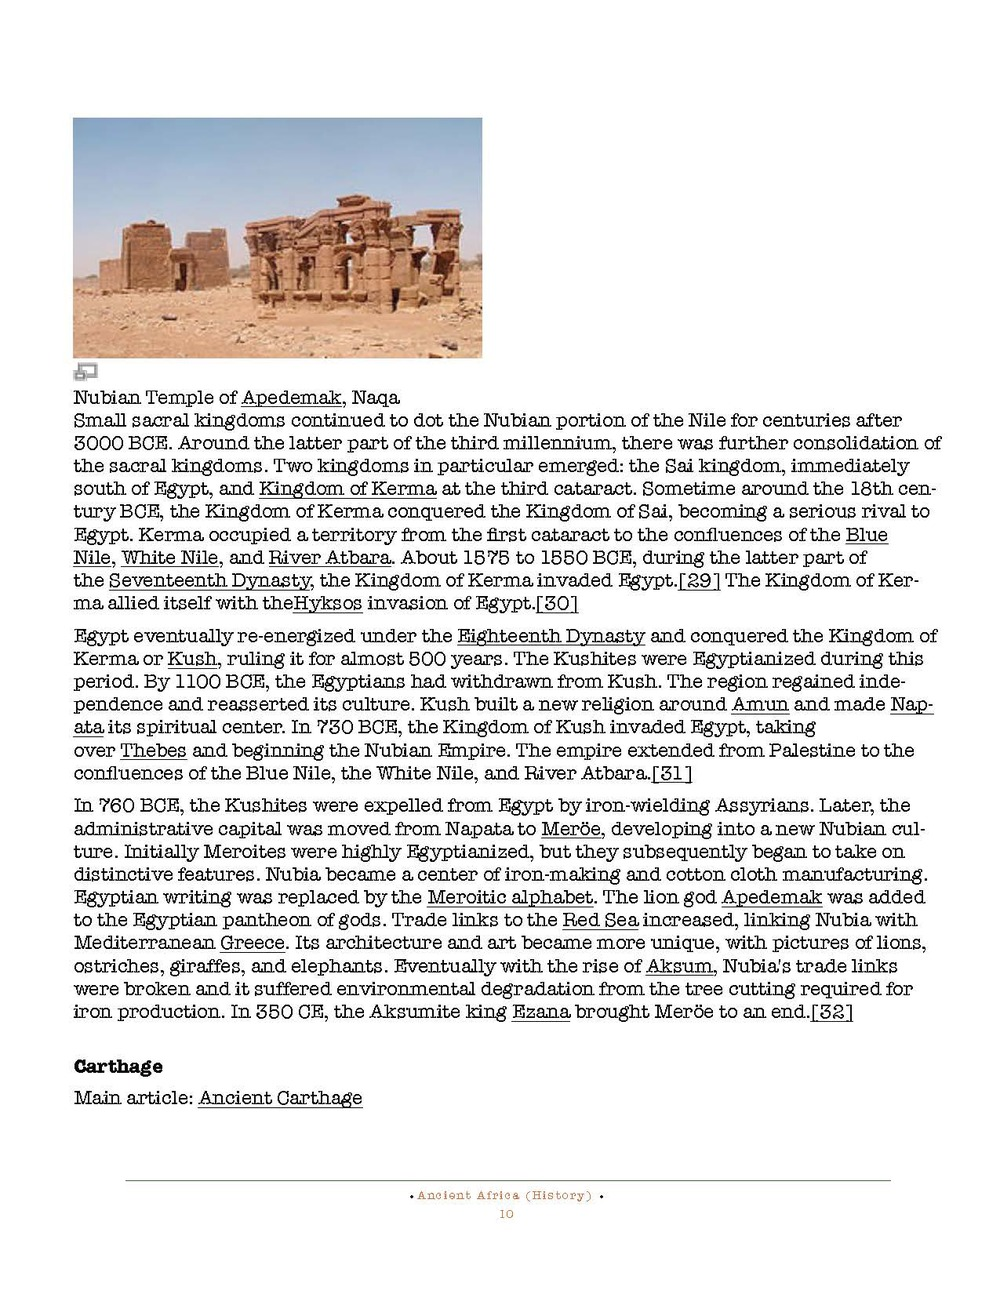 HOCE- Ancient Africa Notes_Page_010.jpg